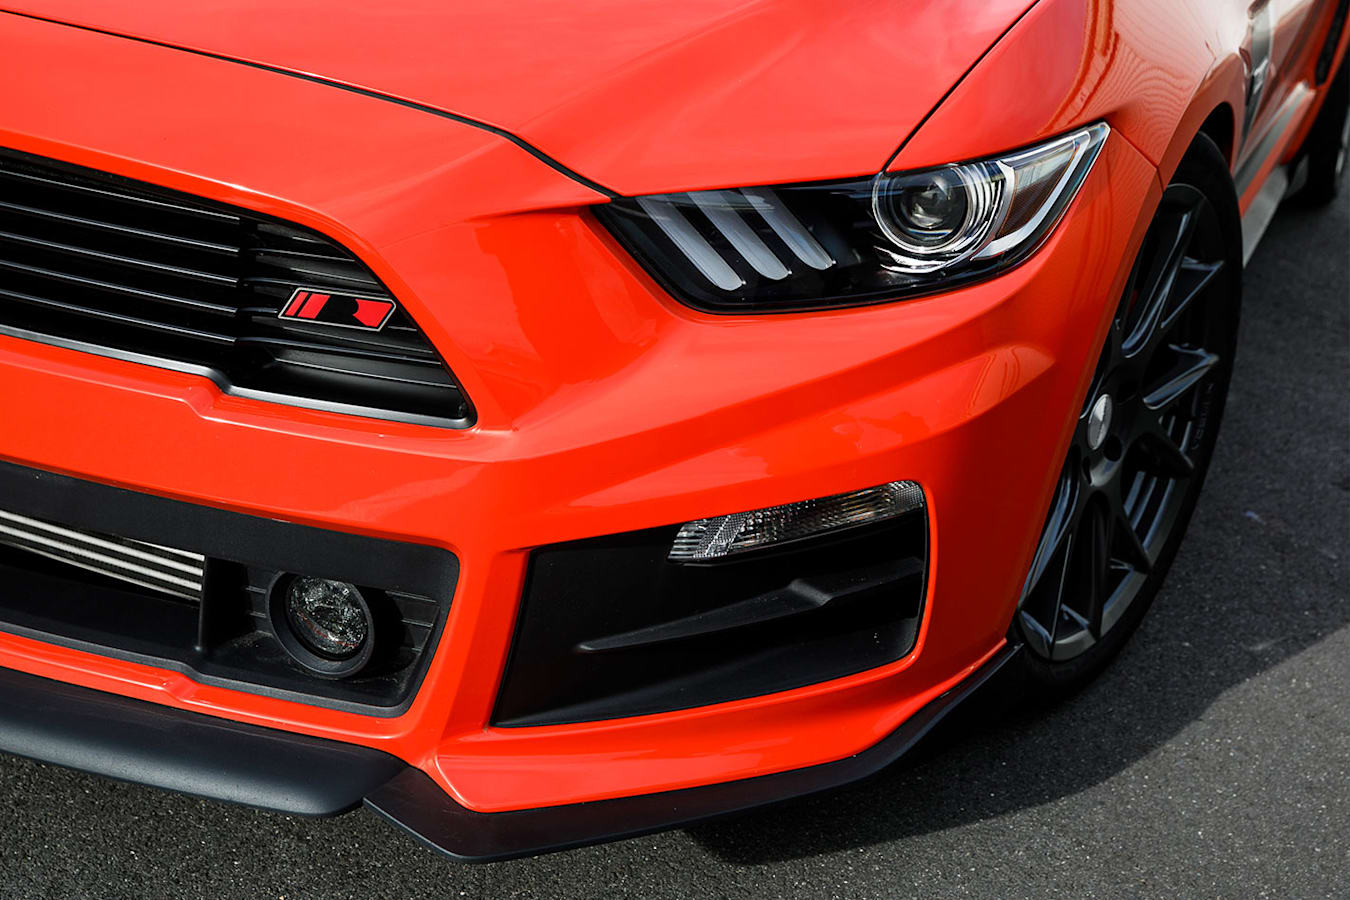 Ford Mustang Hot Tuner 2017 7th Mustang Motorsport Eco Boost MM R 350 T Review Jpg